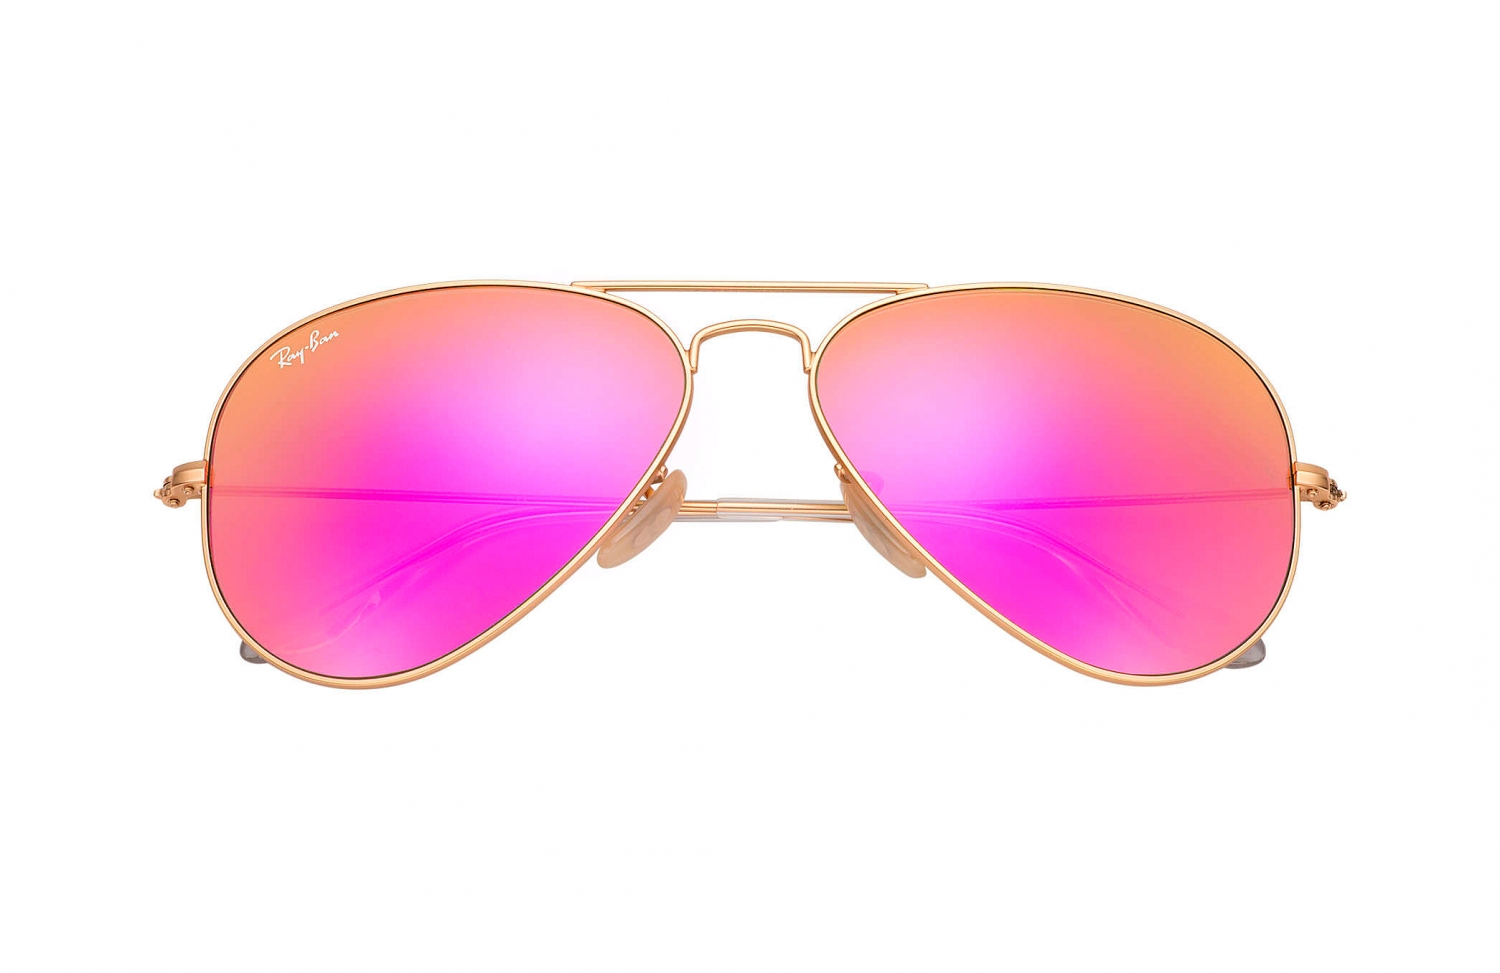 Ray Ban Sonnenbrille Aviator Flash Lenses Gold Zyklam bei SAILERstyle